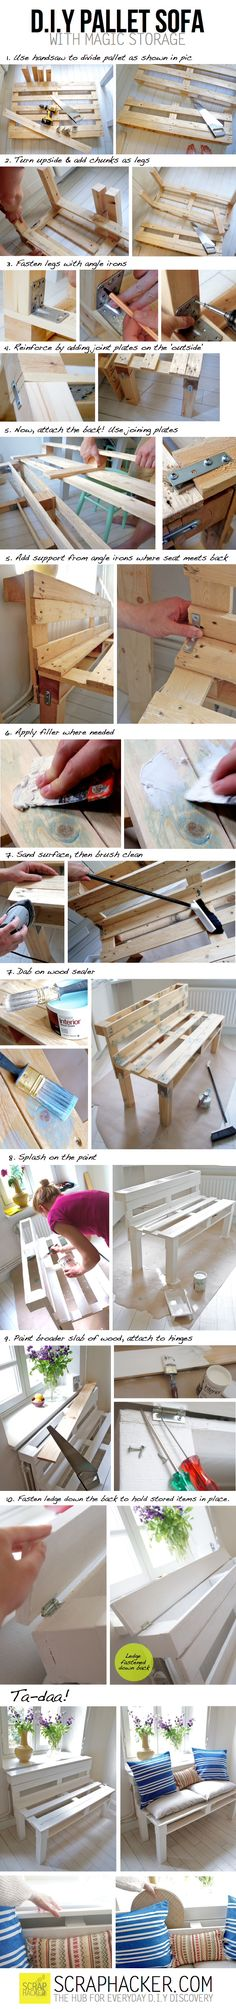 Europalette Bank DIY